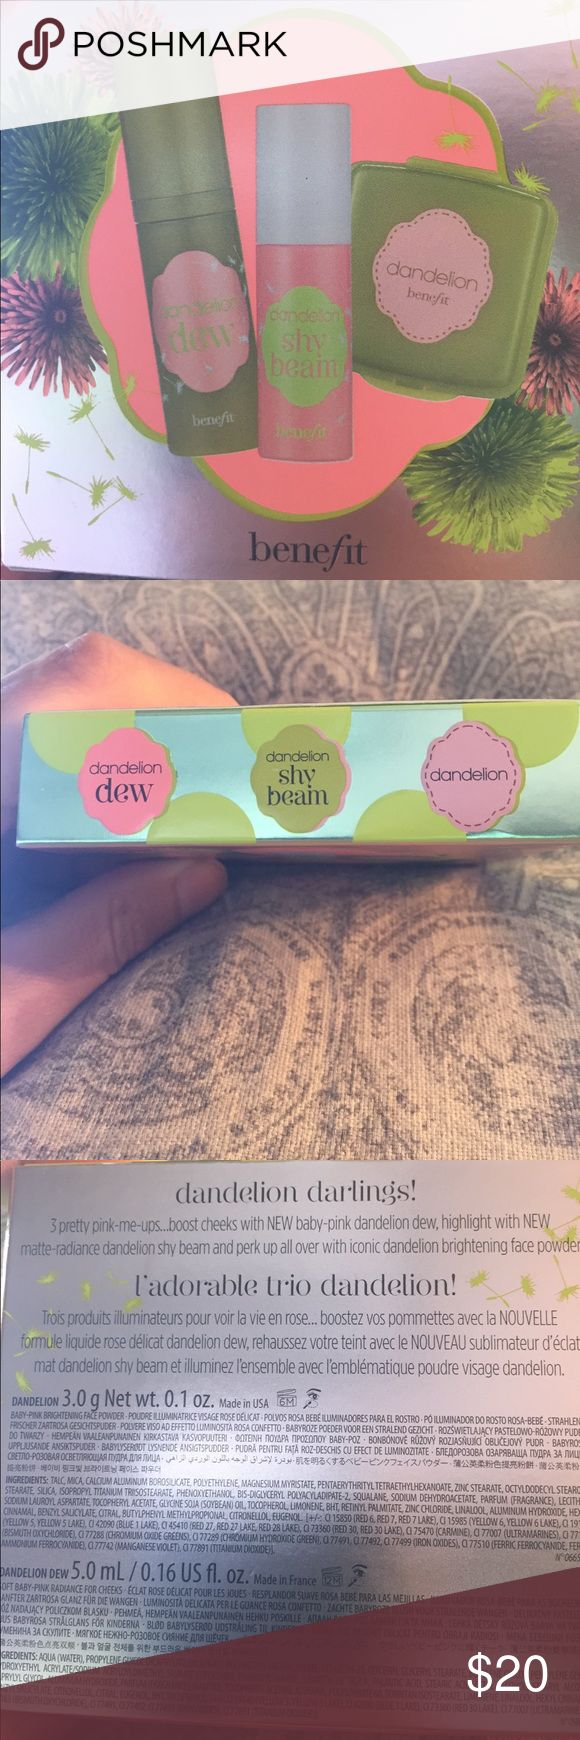 BENEFIT DANDELION TRIO W 2 NEWLY ISSUED PRODUCTS! NO TRADES THANKS! BNIB is a BENEFIT DANDELION TRIO W 2 NEWLY ISSUED PRODUCTS! All purse or travel sizes - try all 3 types of this BENEFIT famous pretty pink pick-me-up to find a favorite or layer all 3! Perk up with ICONIC Dandelion brightening face Powder (3.0 g size), use NEW baby pink Dandelion Dew  in pump form to boost cheeks radiance (5 ml) - a lil dab will do ya! Finish with a brush of NEW Matte-radiance Dandelion Shy Beam (2.5 ml)…